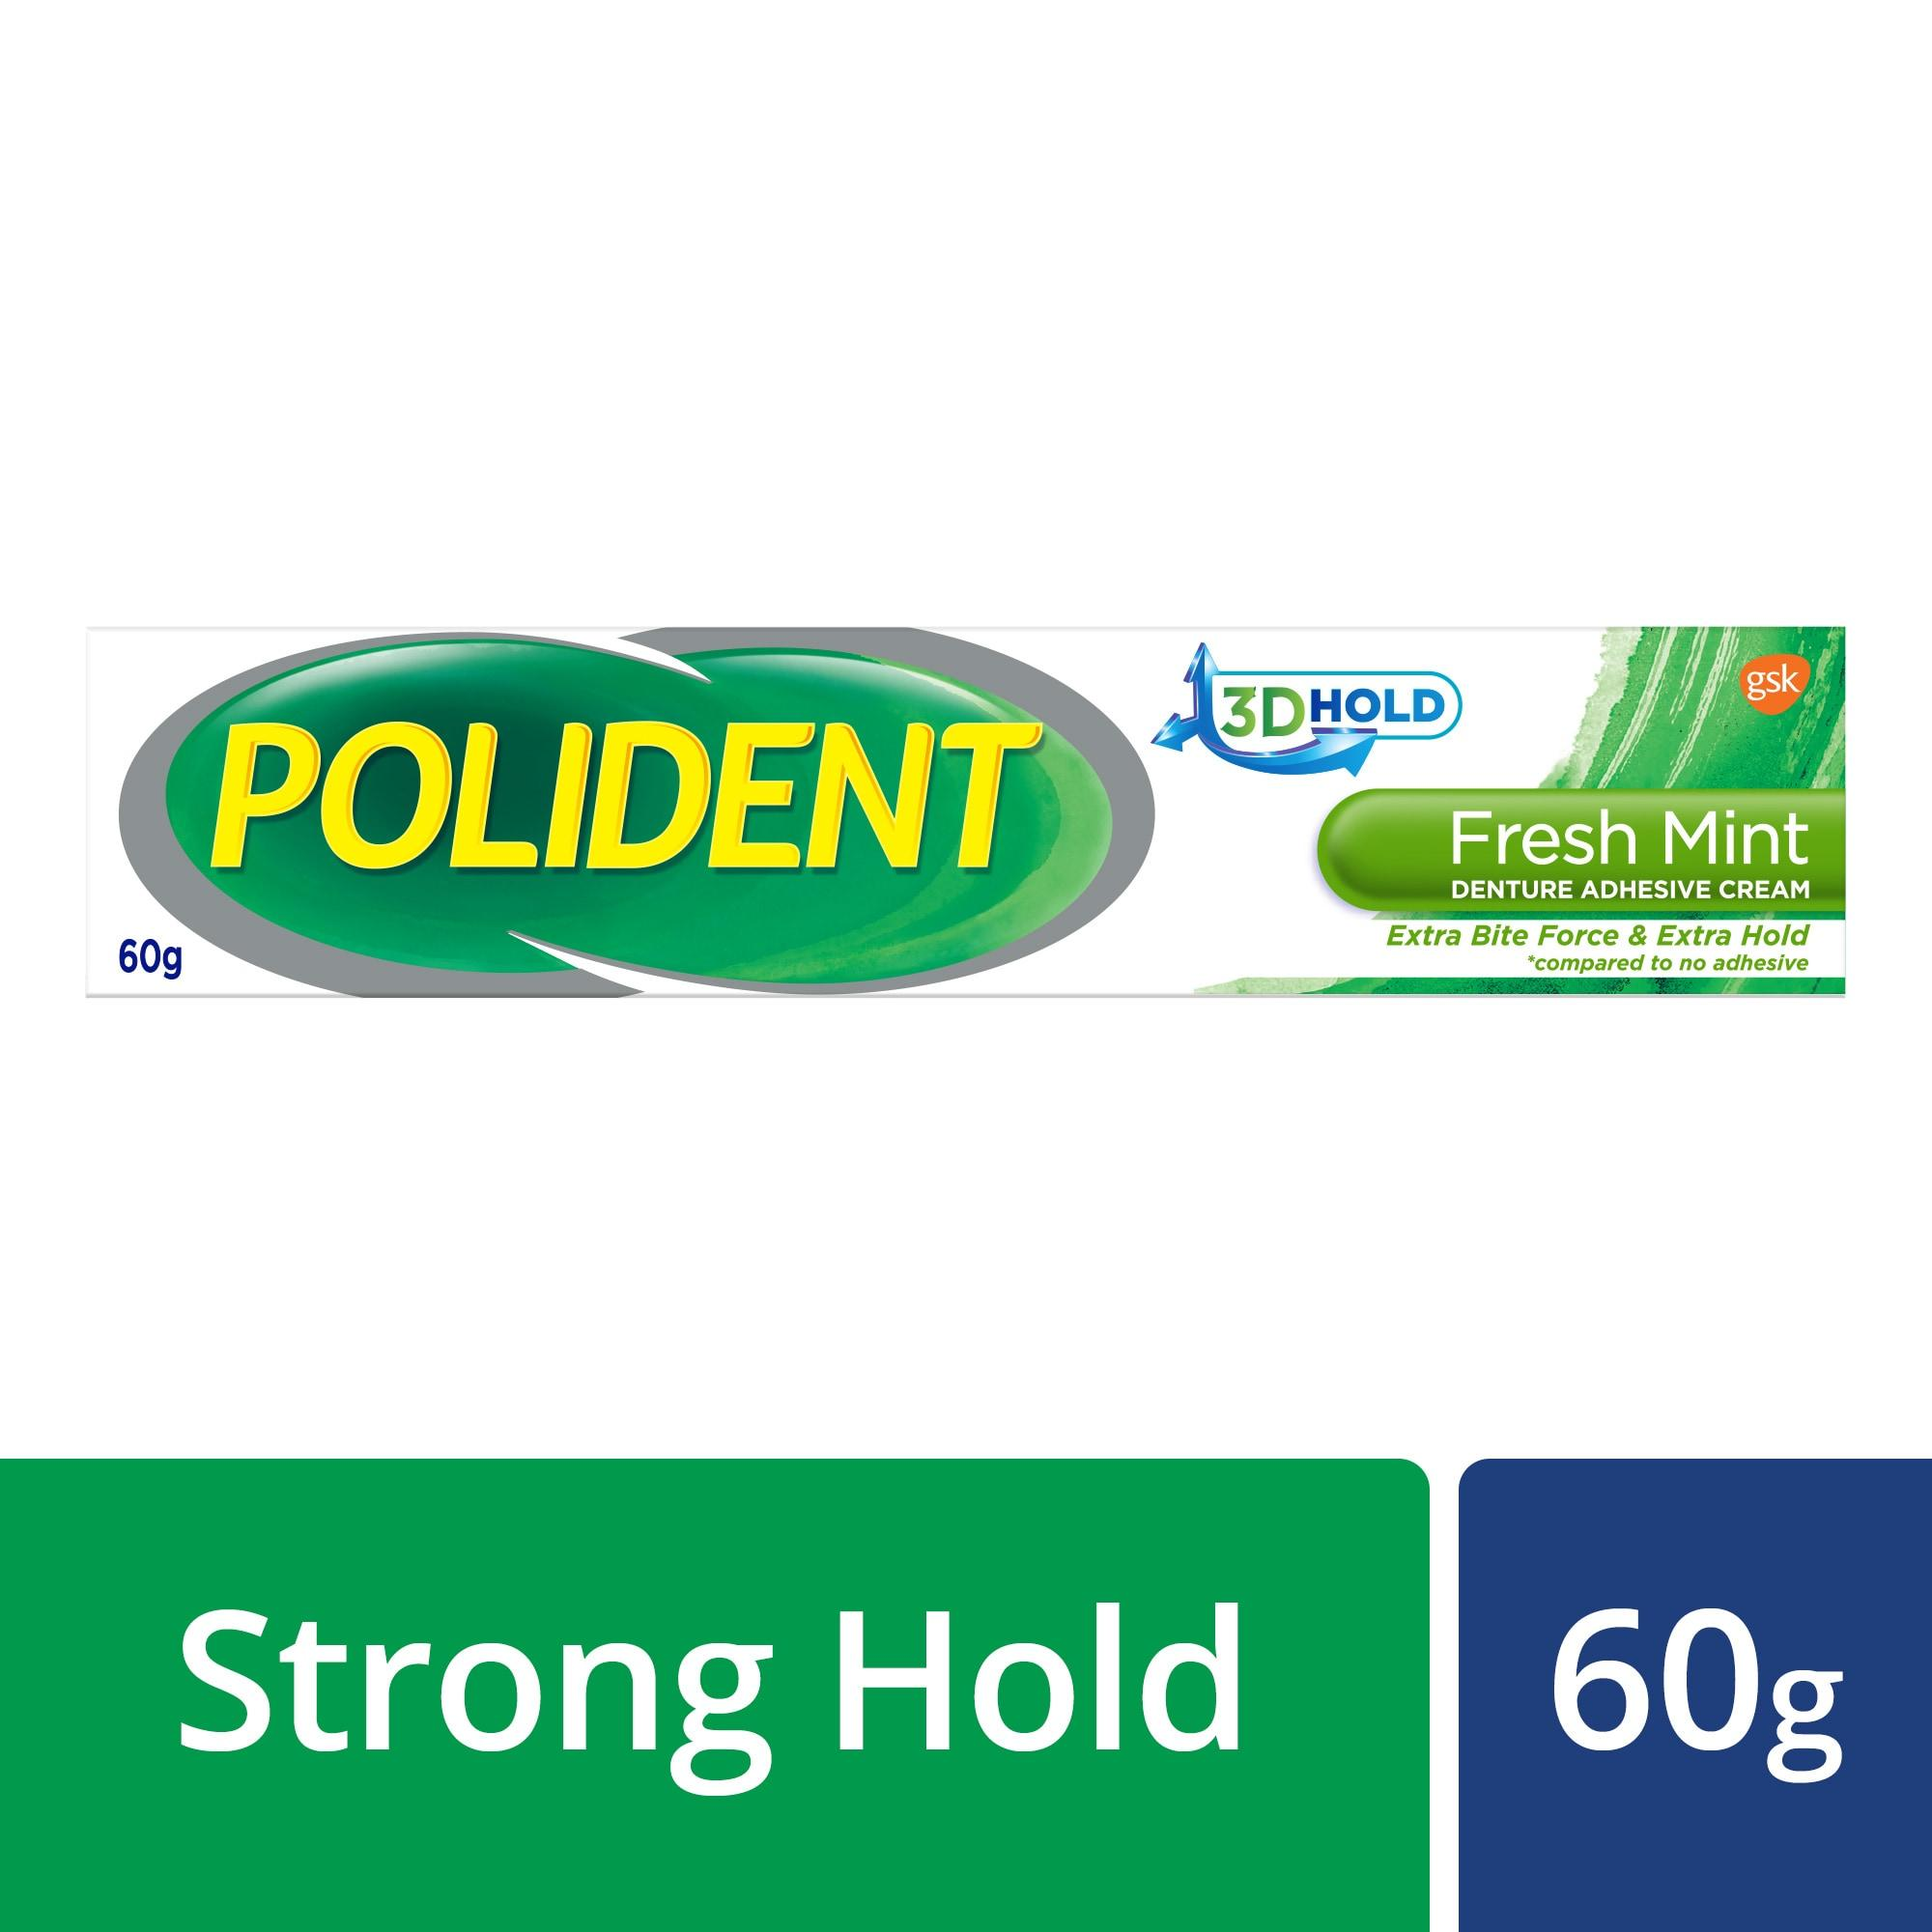 Polident Adhesive Crm 60g By Gsk Official Store..